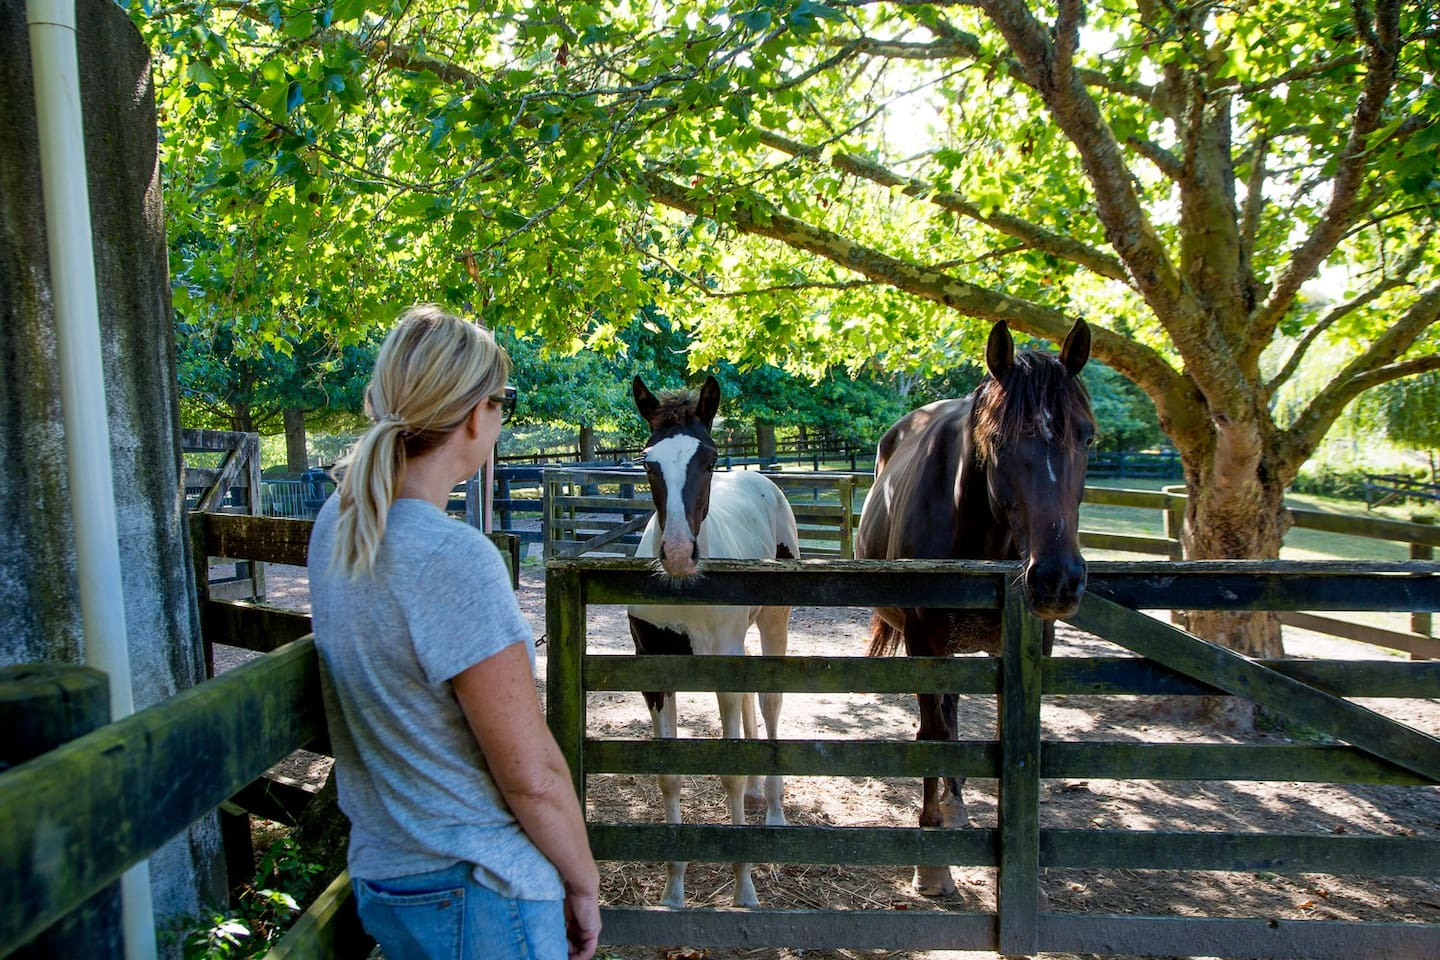 You will have a wonderful stay at this home.. welcoming, social experience on one outstanding property, with lots of variety of animals. A real experience awaits you.